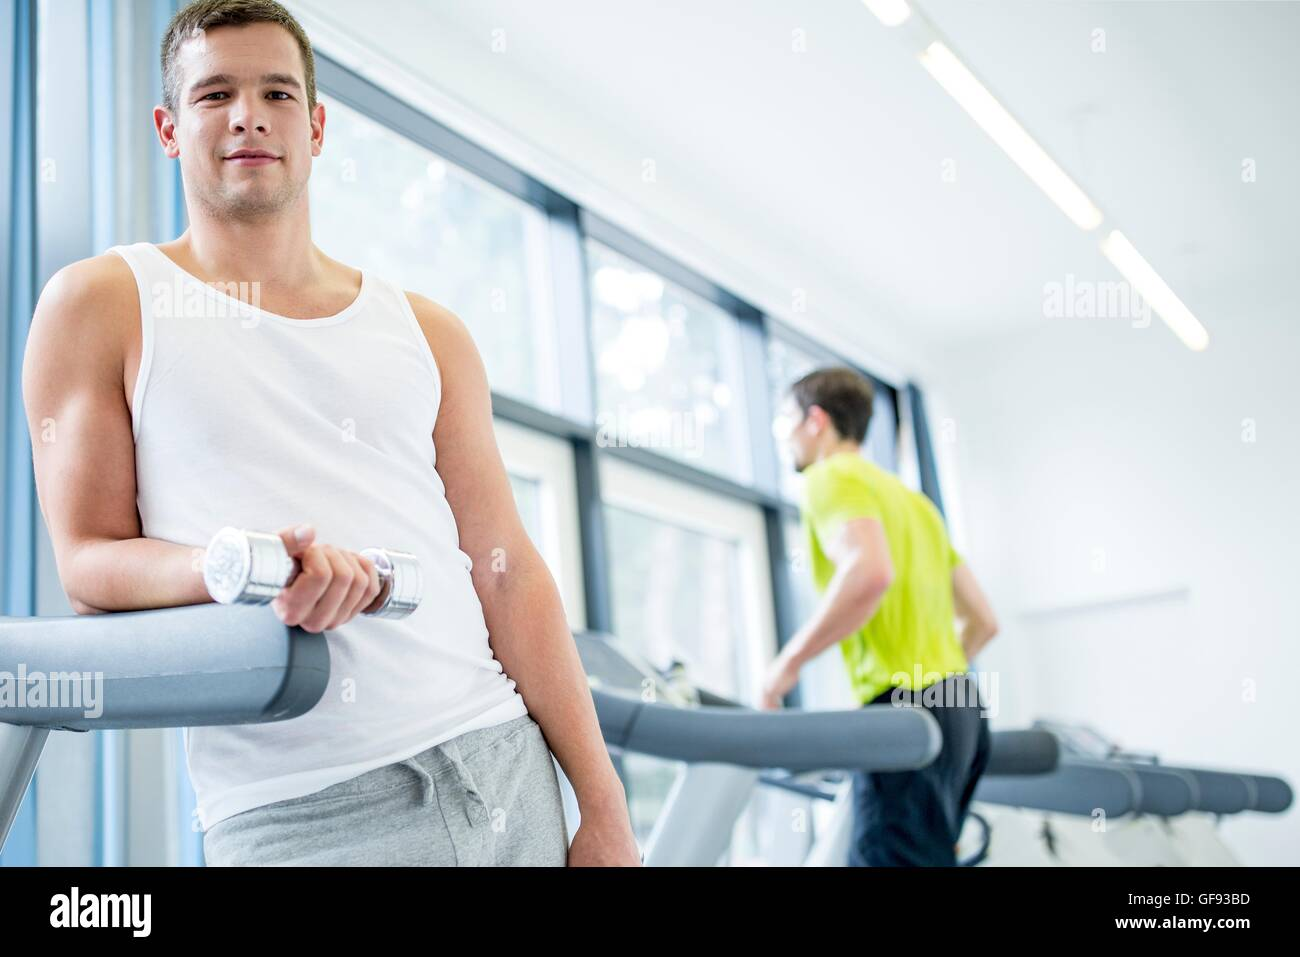 PROPERTY RELEASED. MODEL RELEASED. Portrait of young man holding dumbbells while leaning on treadmill. - Stock Image